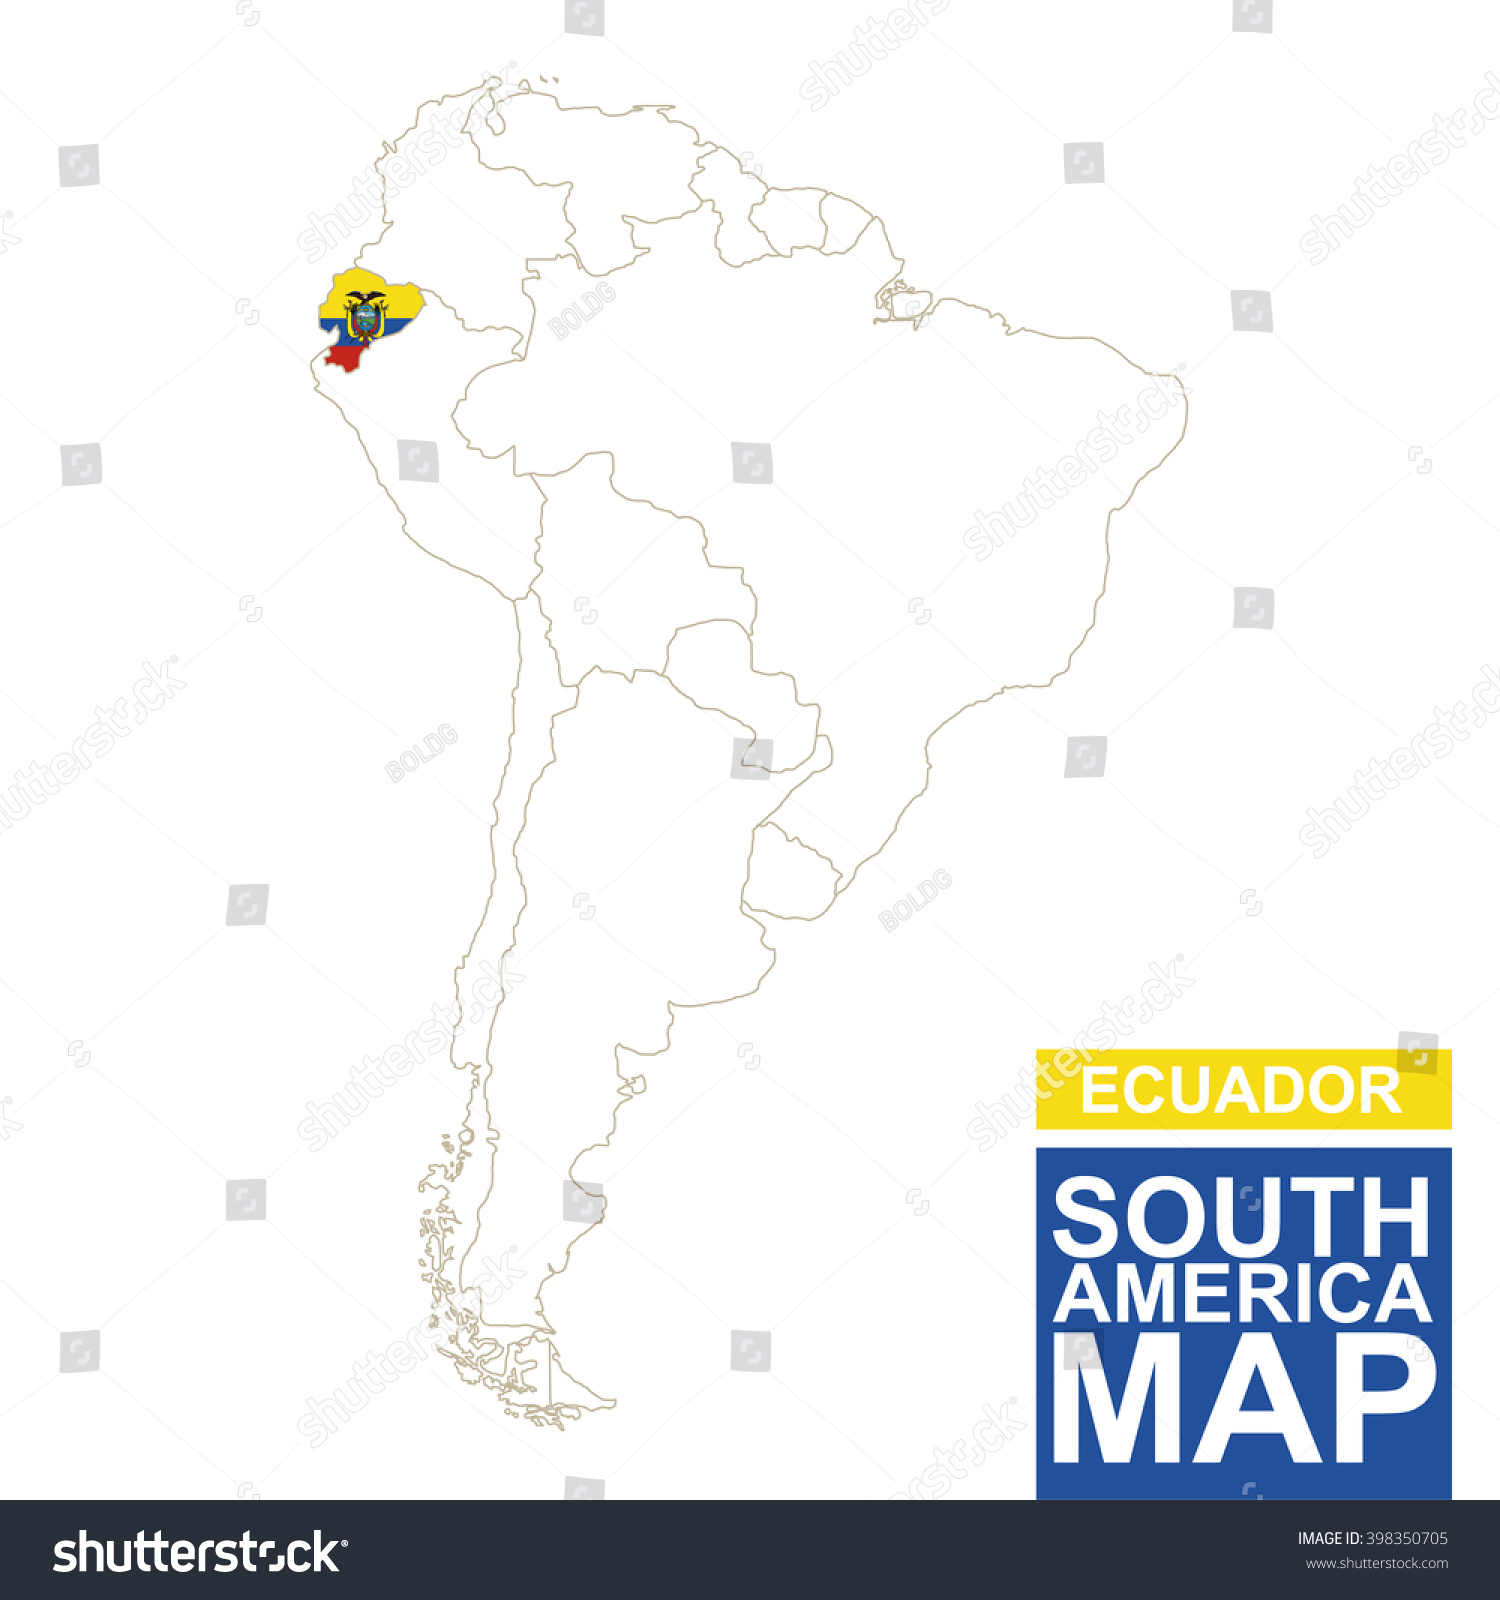 South America Contoured Map With Highlighted Ecuador Ecuador Map - Ecuador south america map